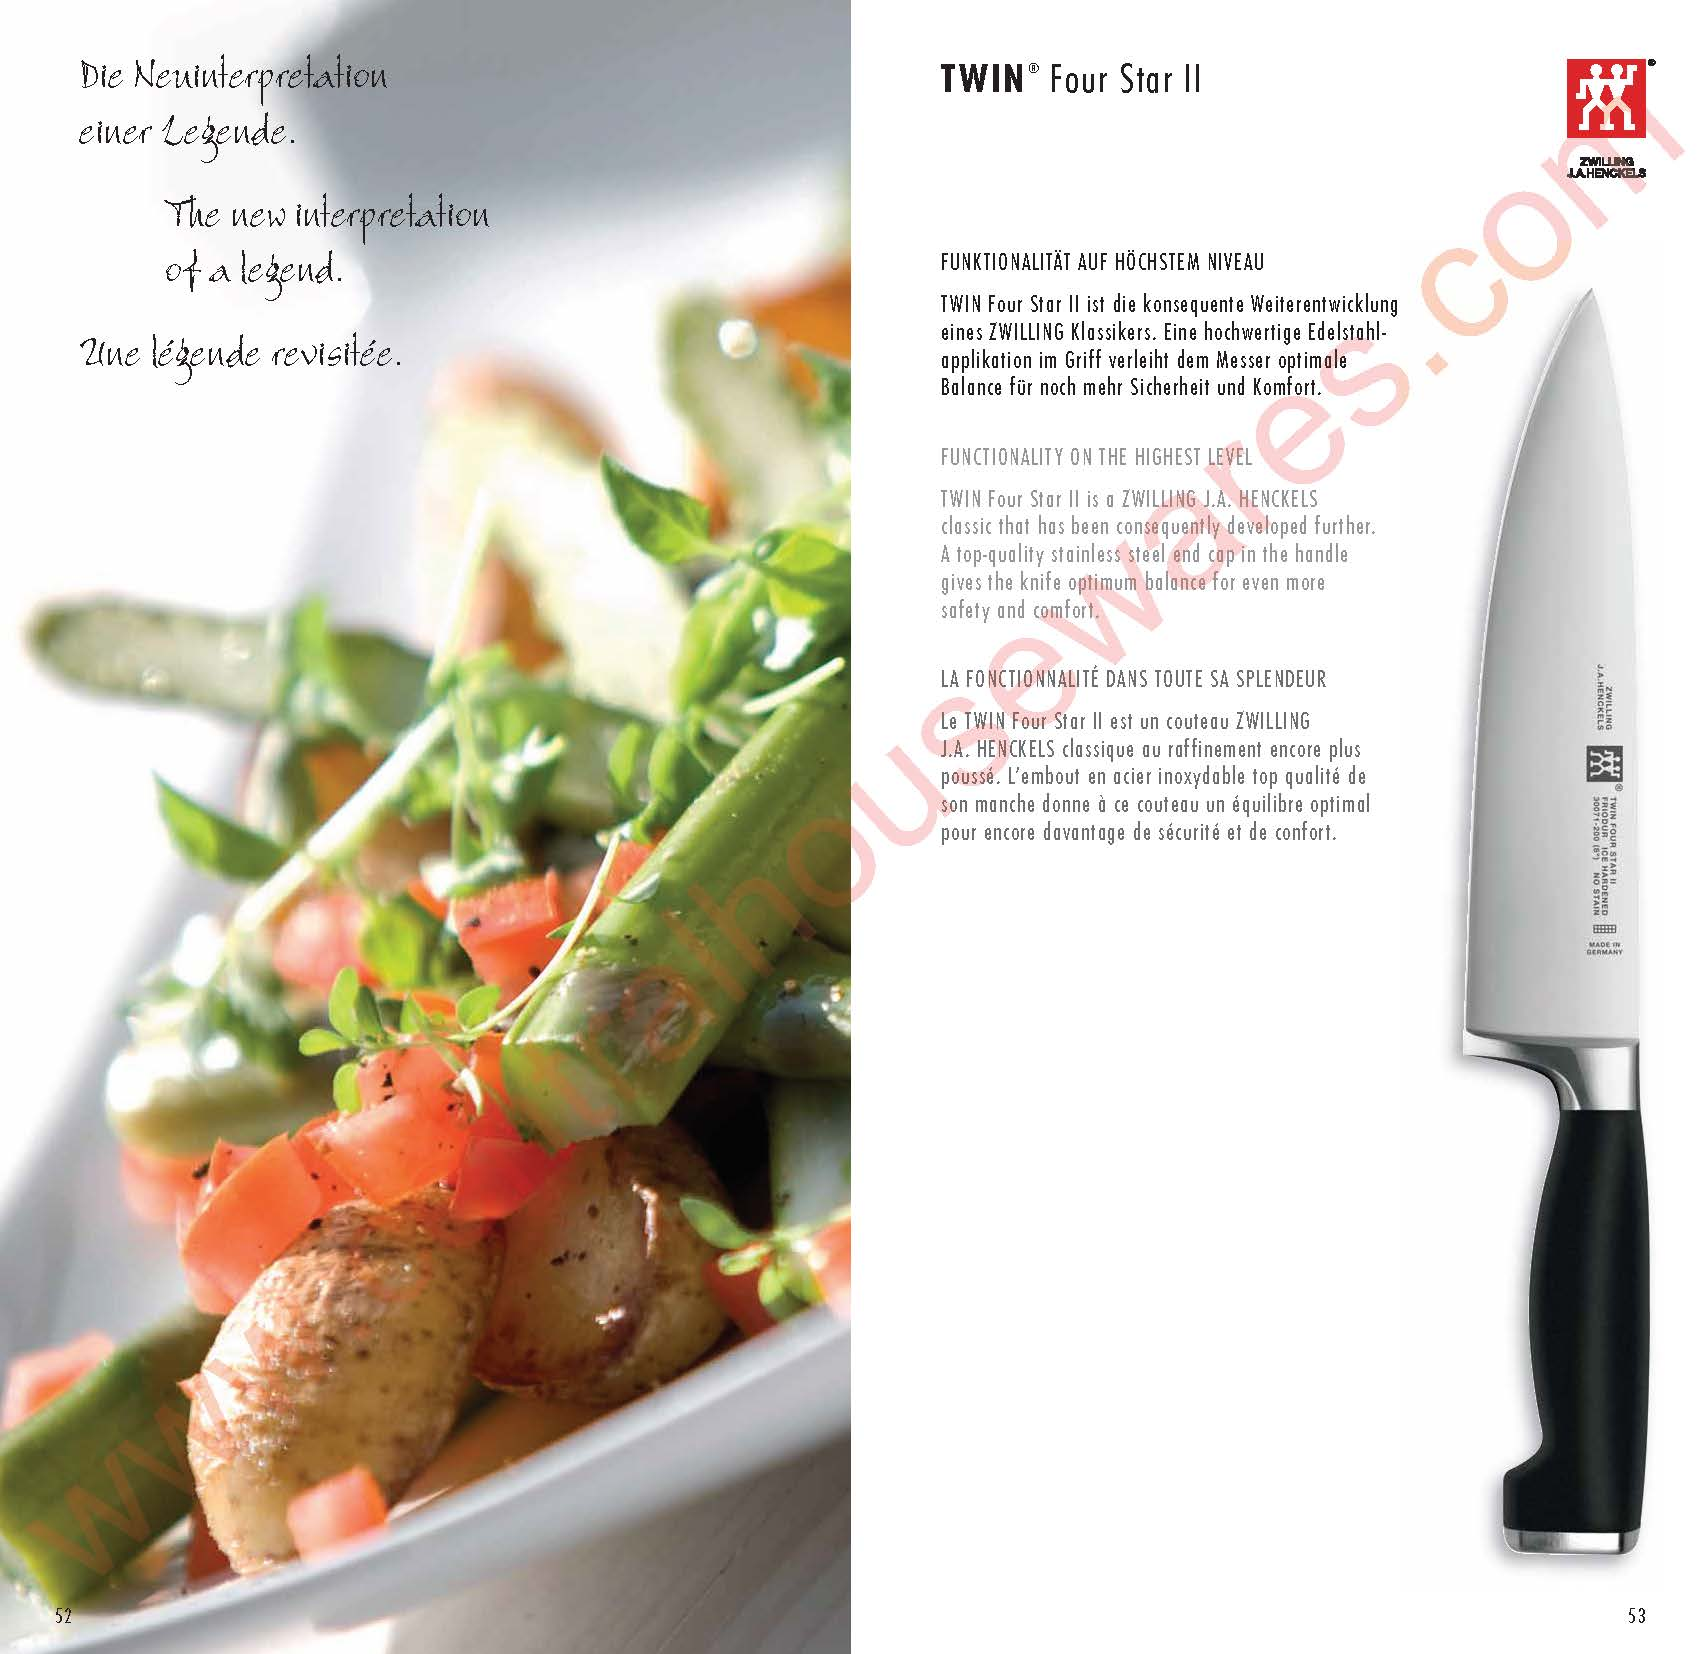 Trendy raf cuisine pro with raf cuisine pro for Raf cuisine pro